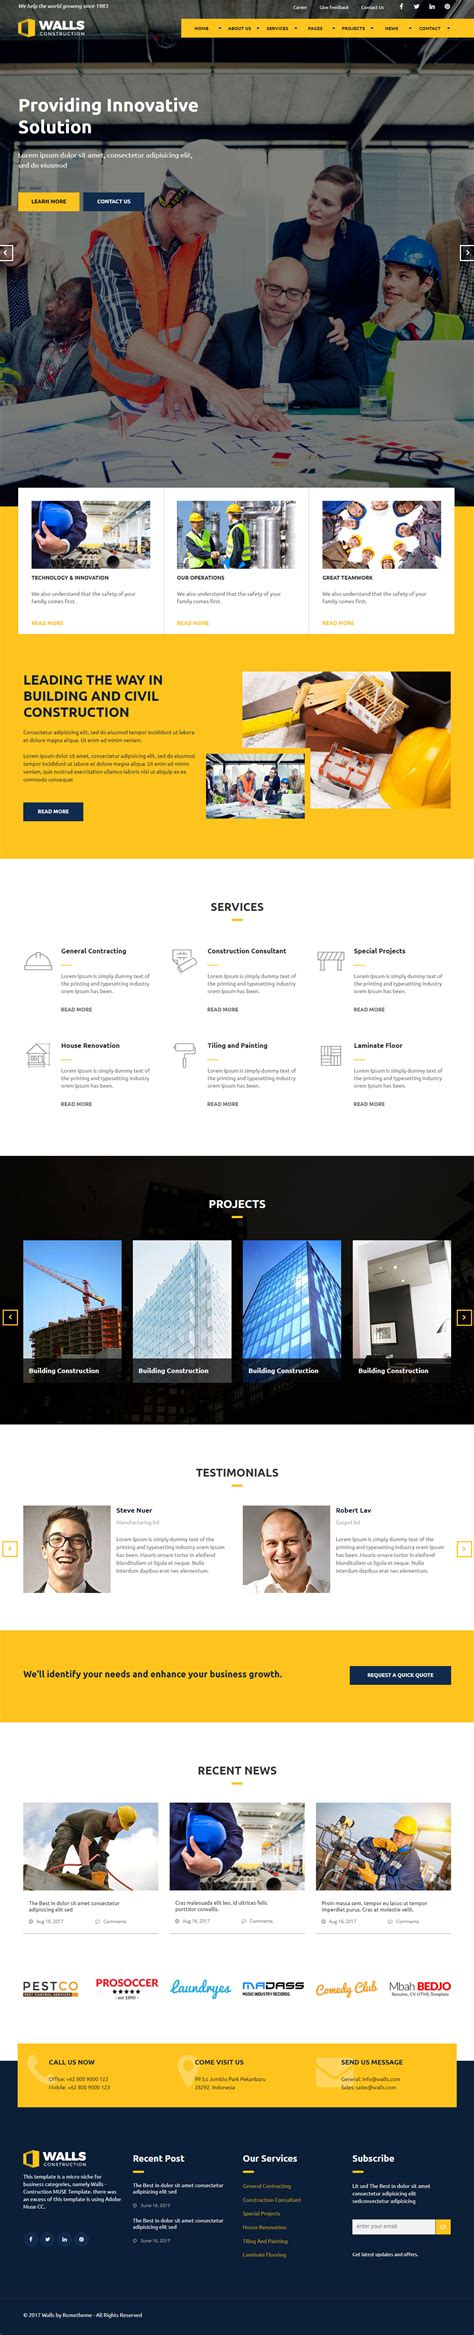 Best Adobe Muse Architecture Themes 2017 Responsive Miracle Muse Templates Responsive